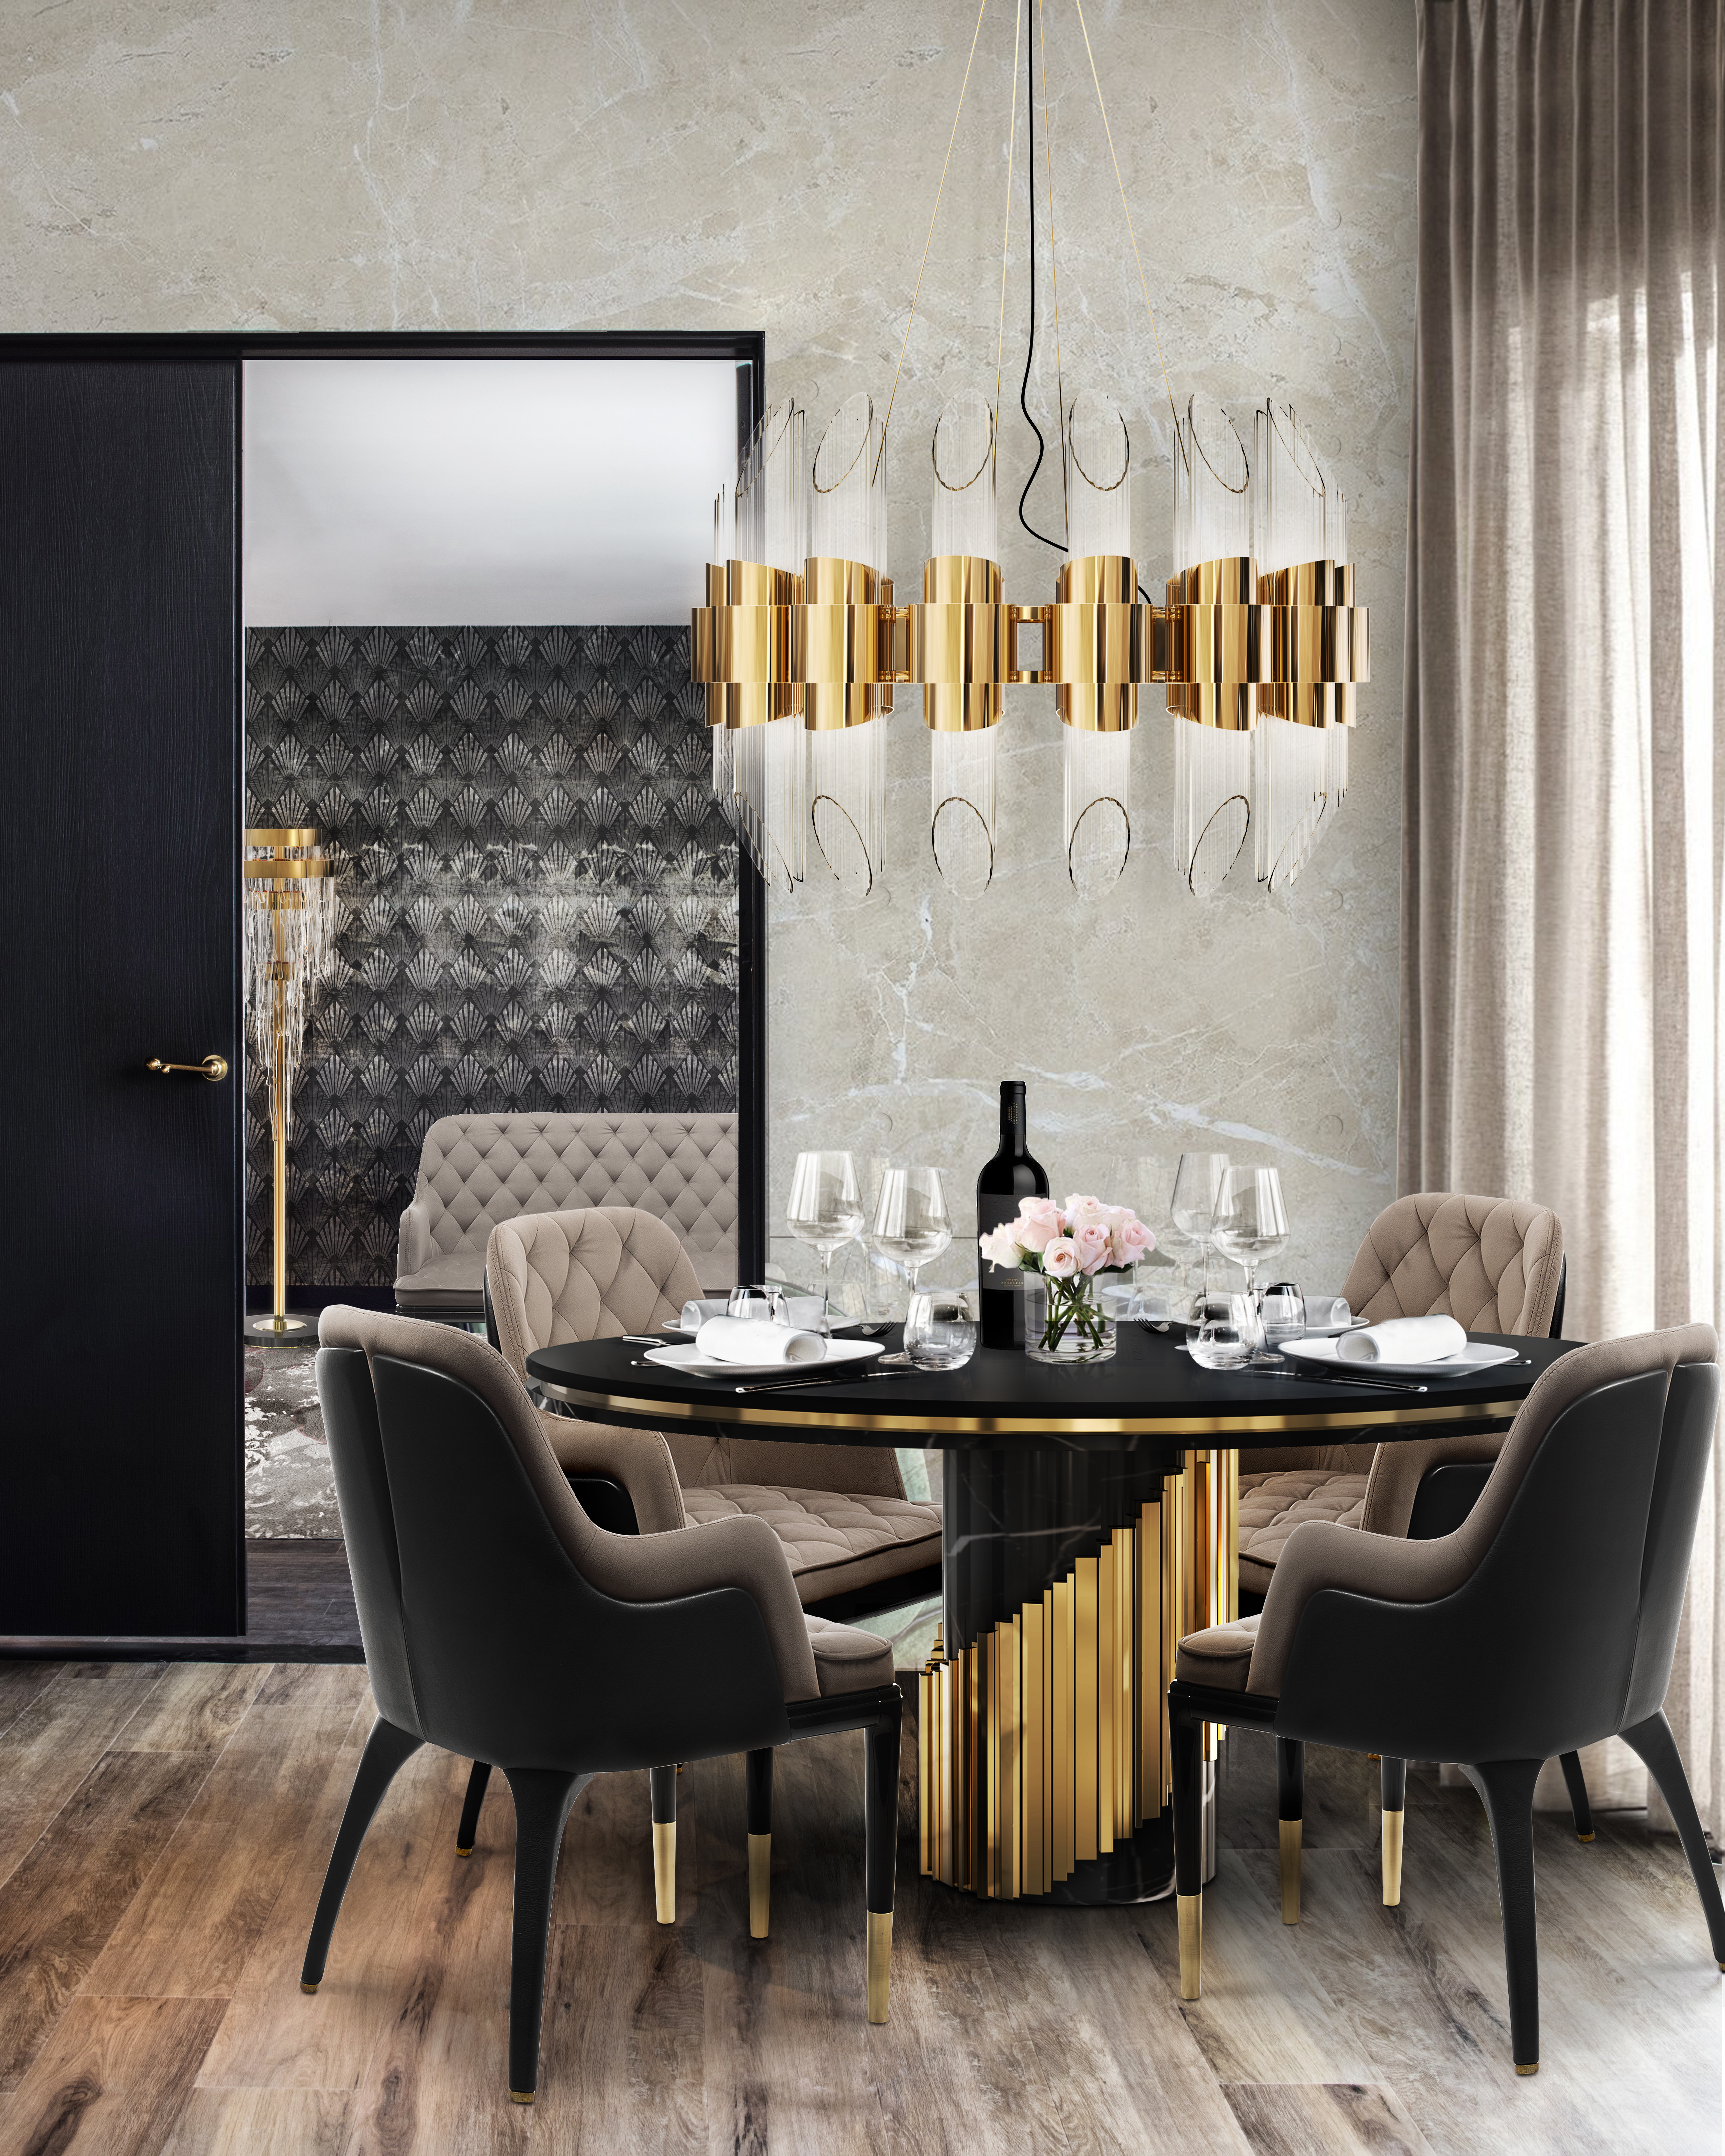 Dining Room Trends: Naturalite dining room trends Dining Room Trends: Naturalite tycho round suspension cover 01